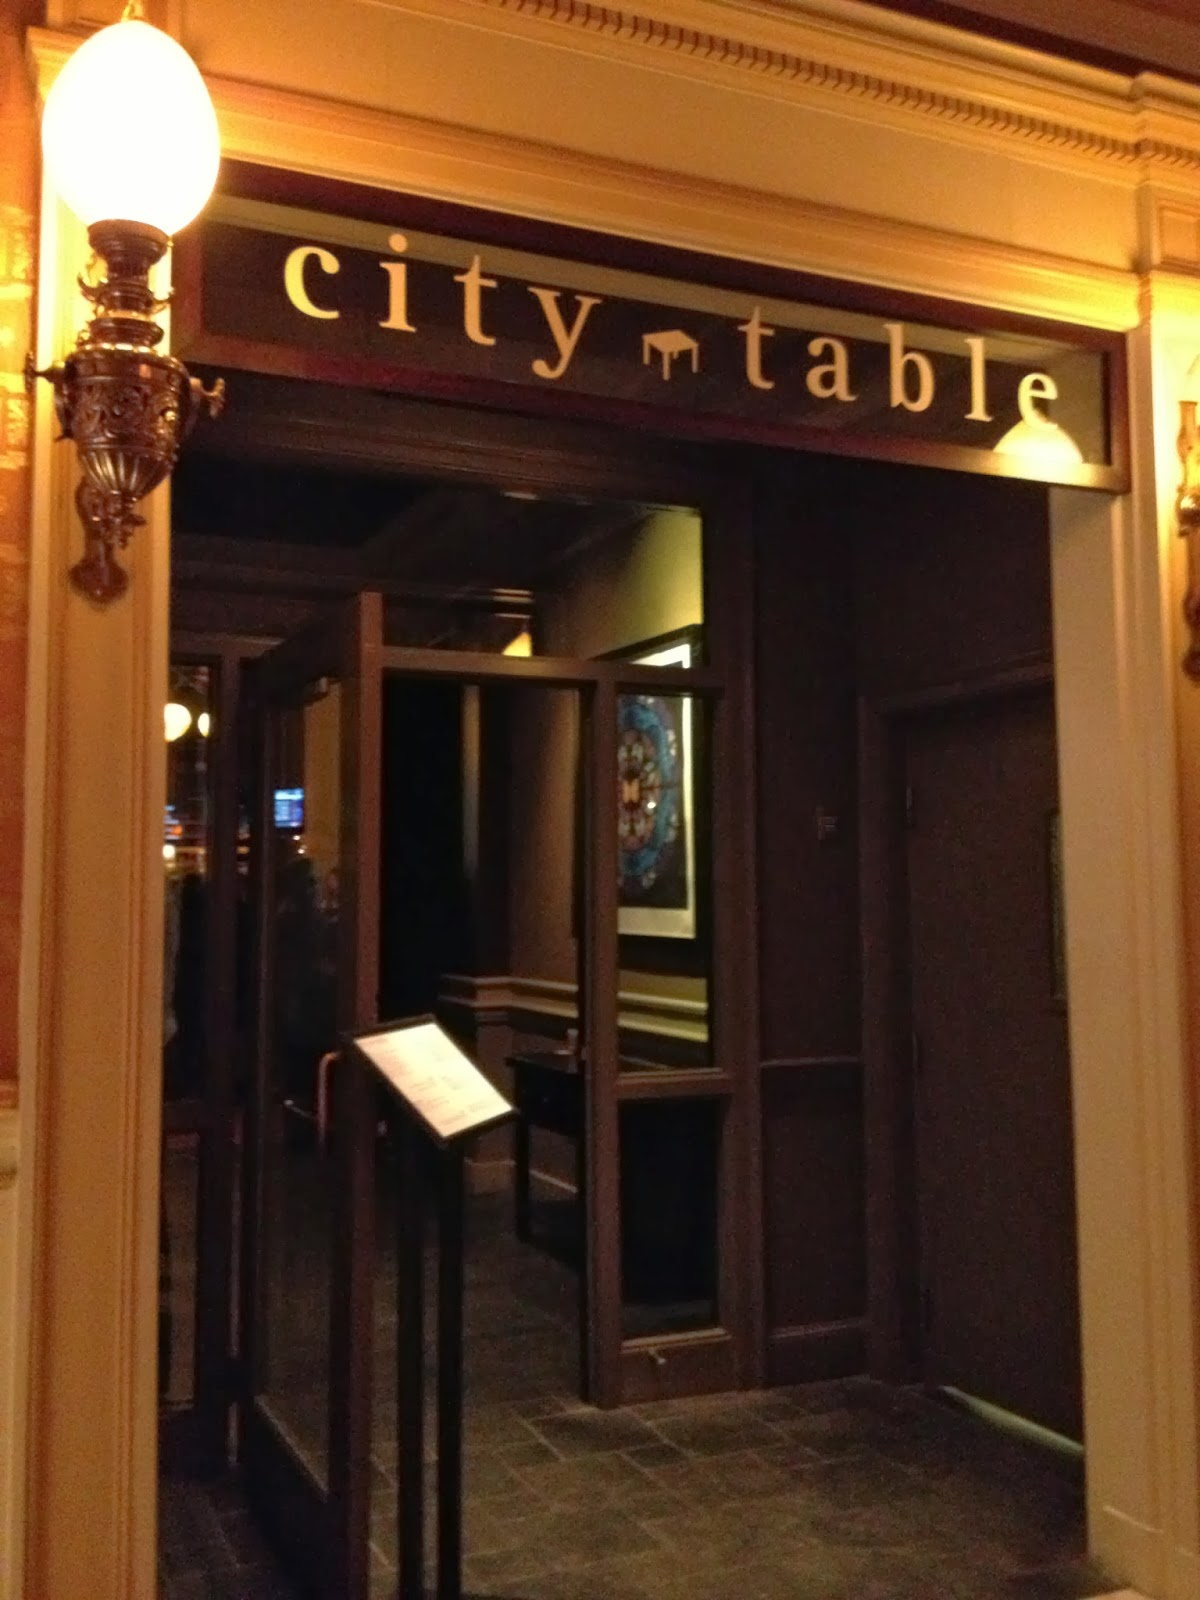 Boston ABC Dining, Letter C: City Table